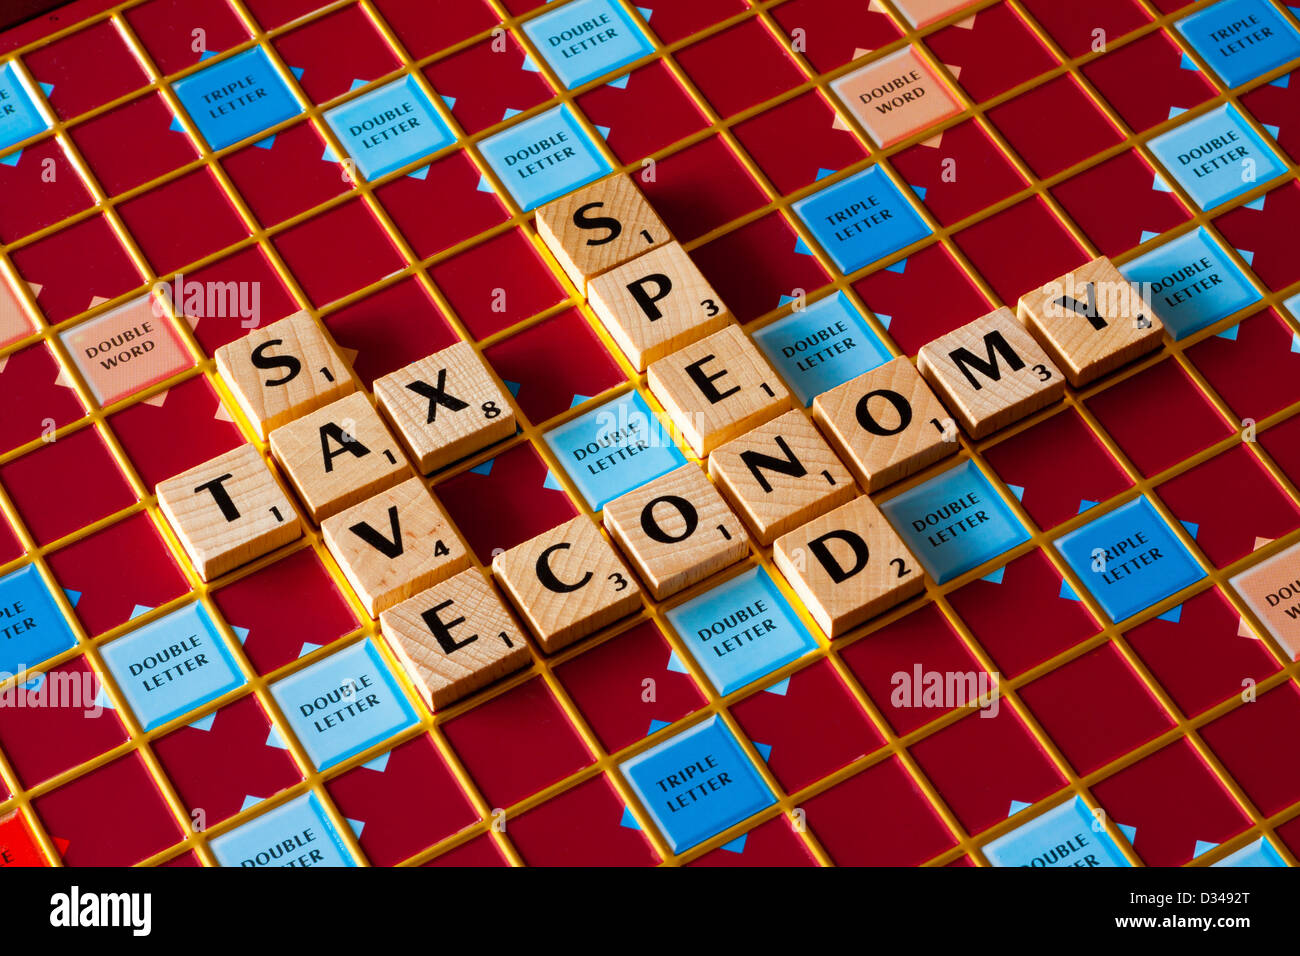 Scrabble board spelling Save Tax Spend Economy words relevant to the budget and state of the economy and finance - Stock Image